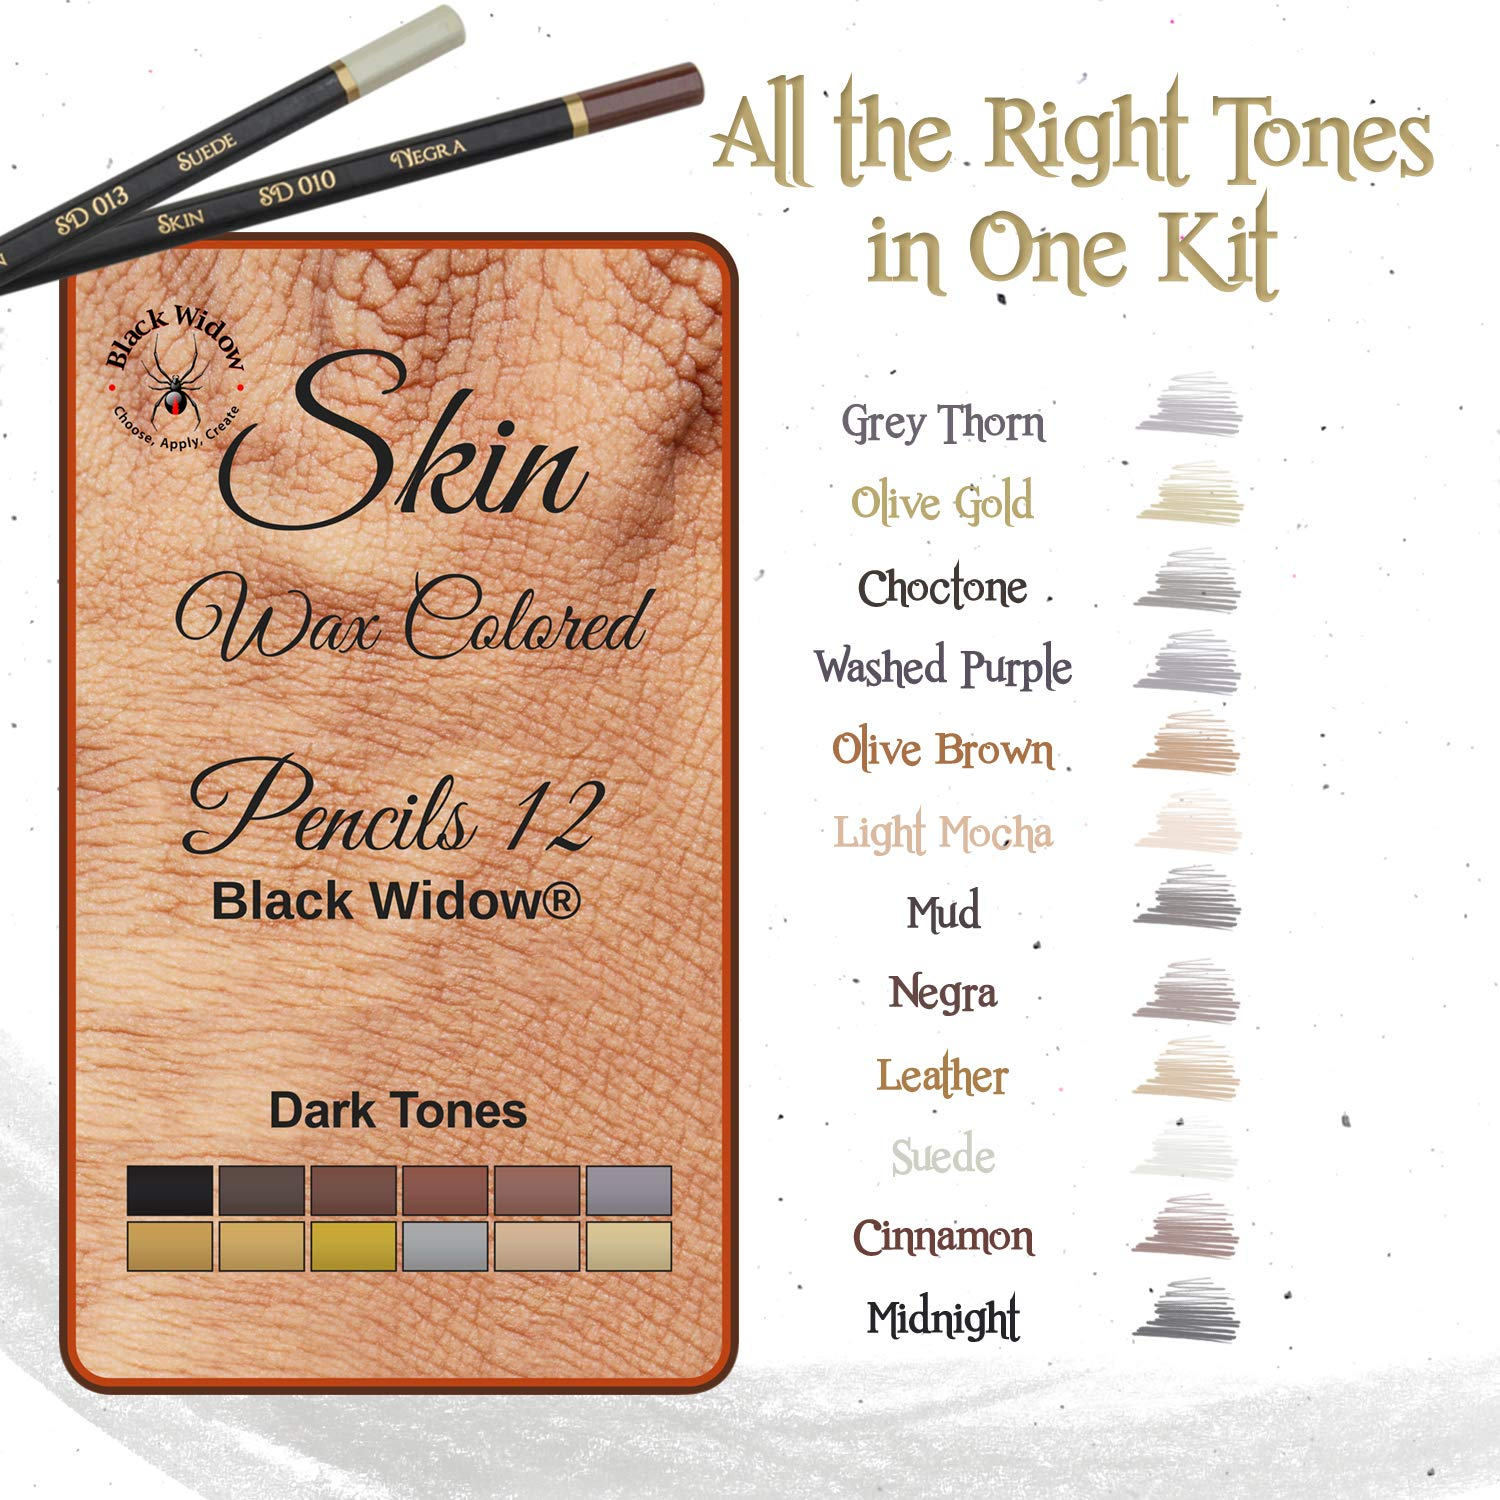 Dark Skin Tone Color Pencils for Portrait Set - Colored Pencils for Adults and Skintone Artist Pencils by Medihealth 1 (Image #5)